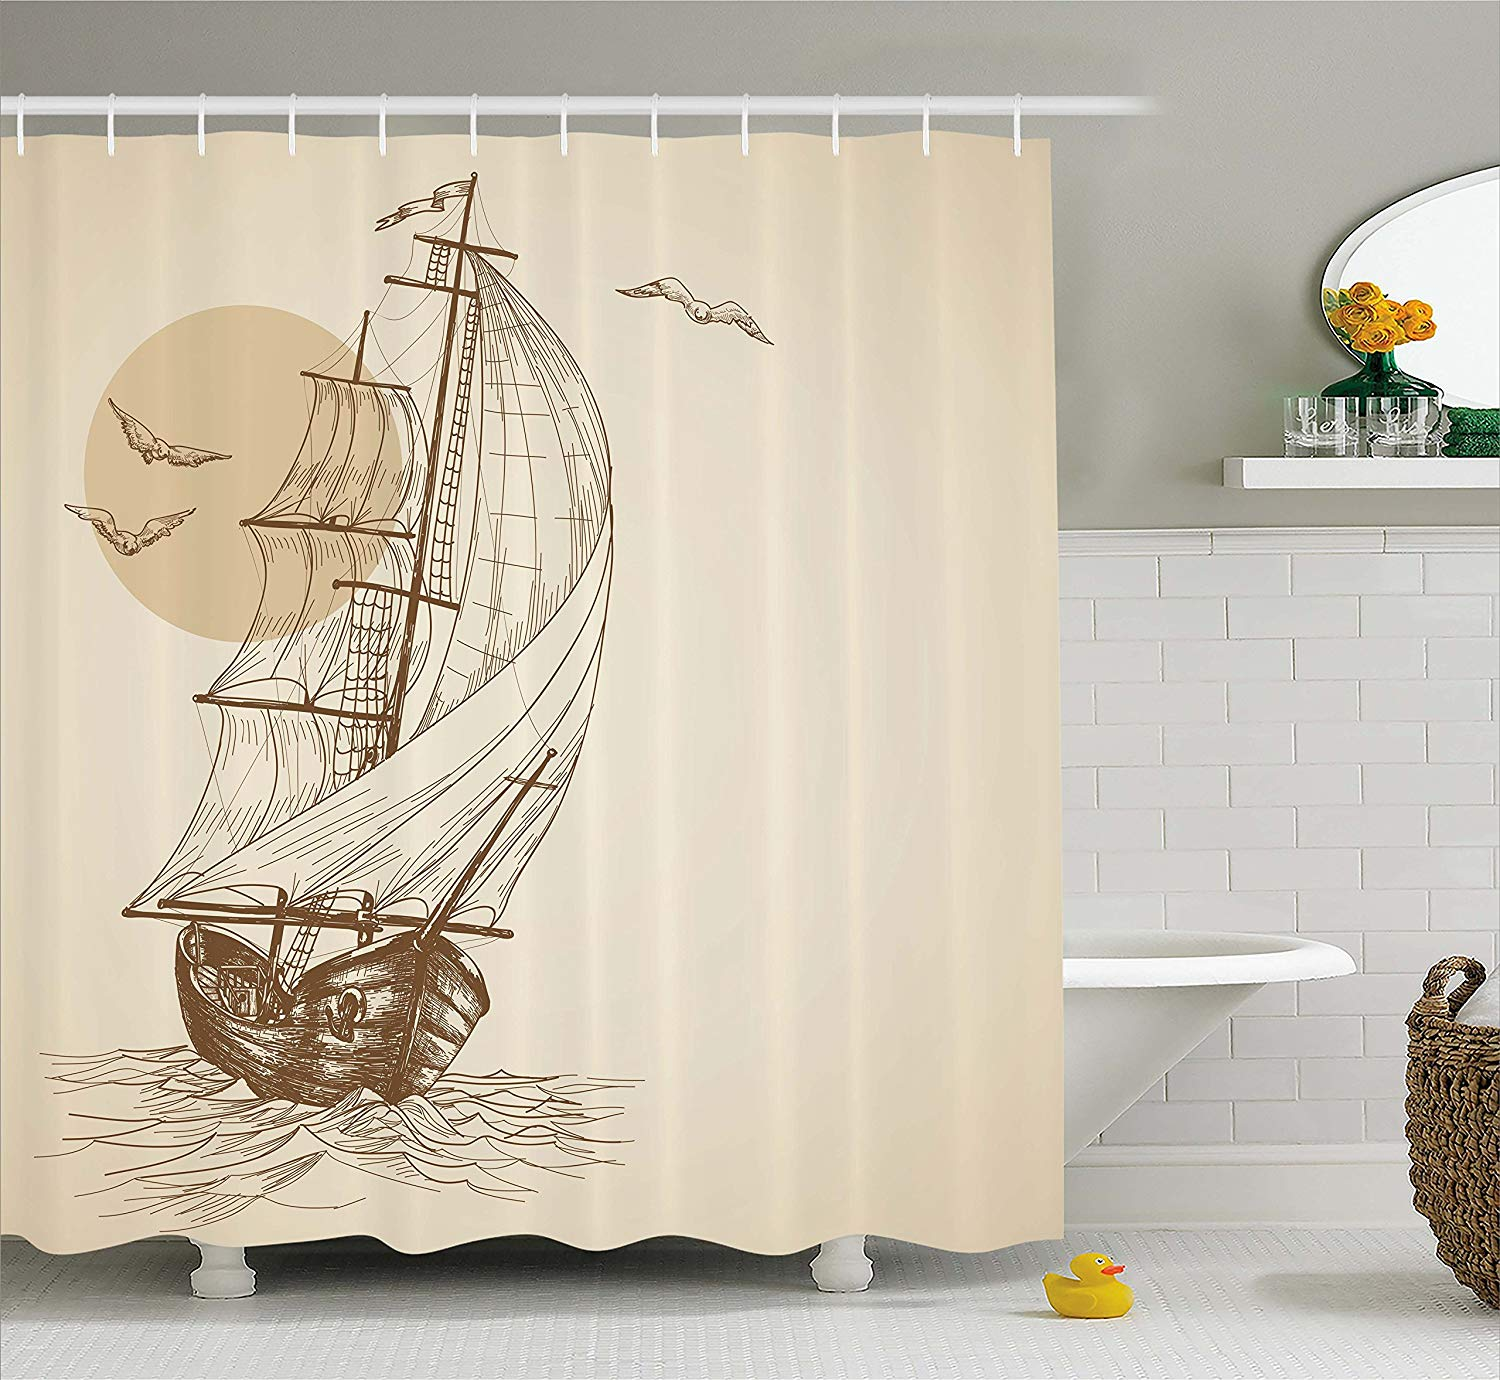 Beige Shower Curtain Nautical Maritime Love Sailor Old Wooden Sailboat On Ocean Waves Seabirds Seagulls